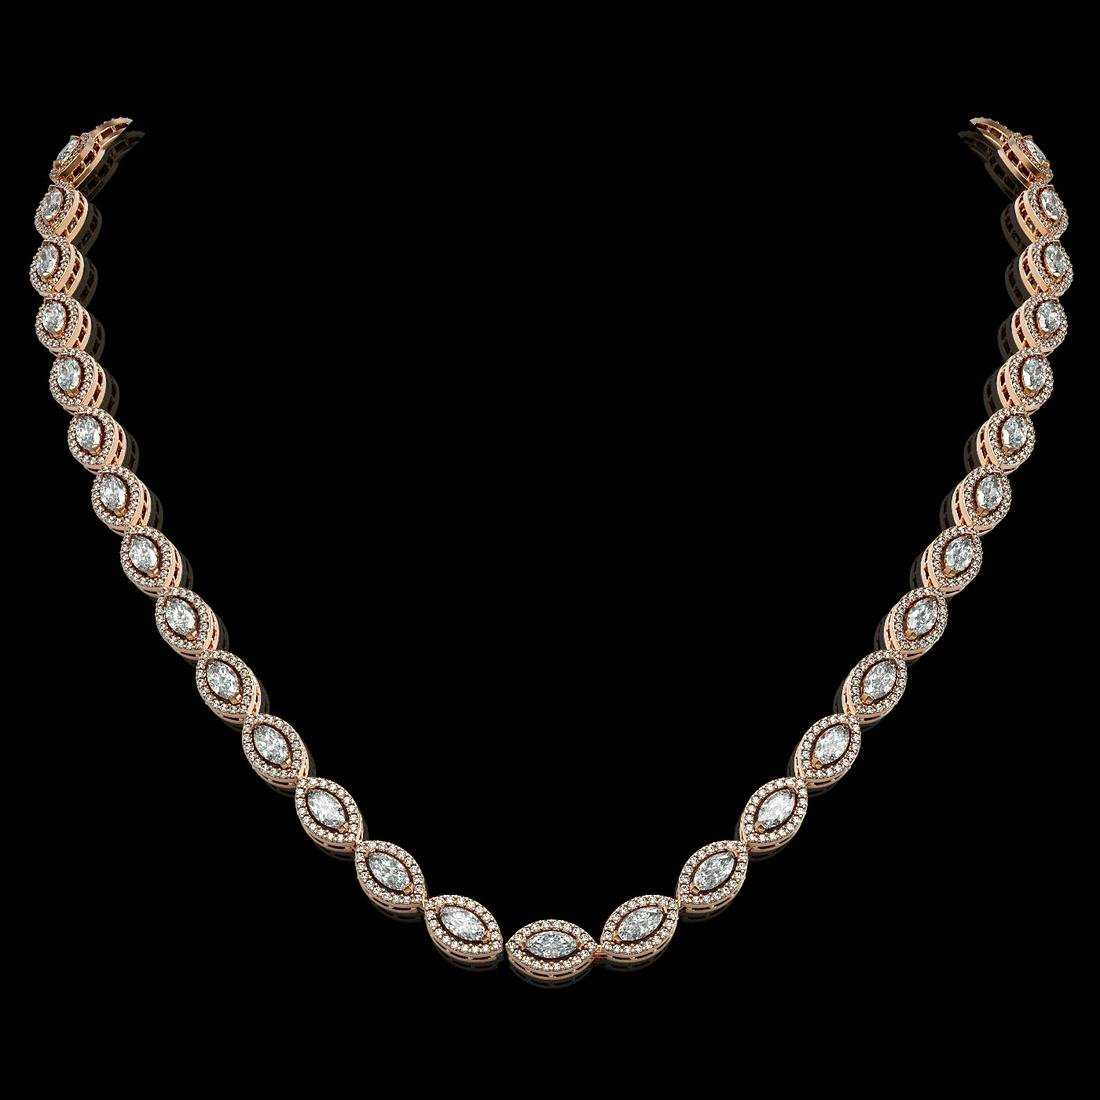 15.74 ctw Marquise Diamond Necklace 18K Rose Gold